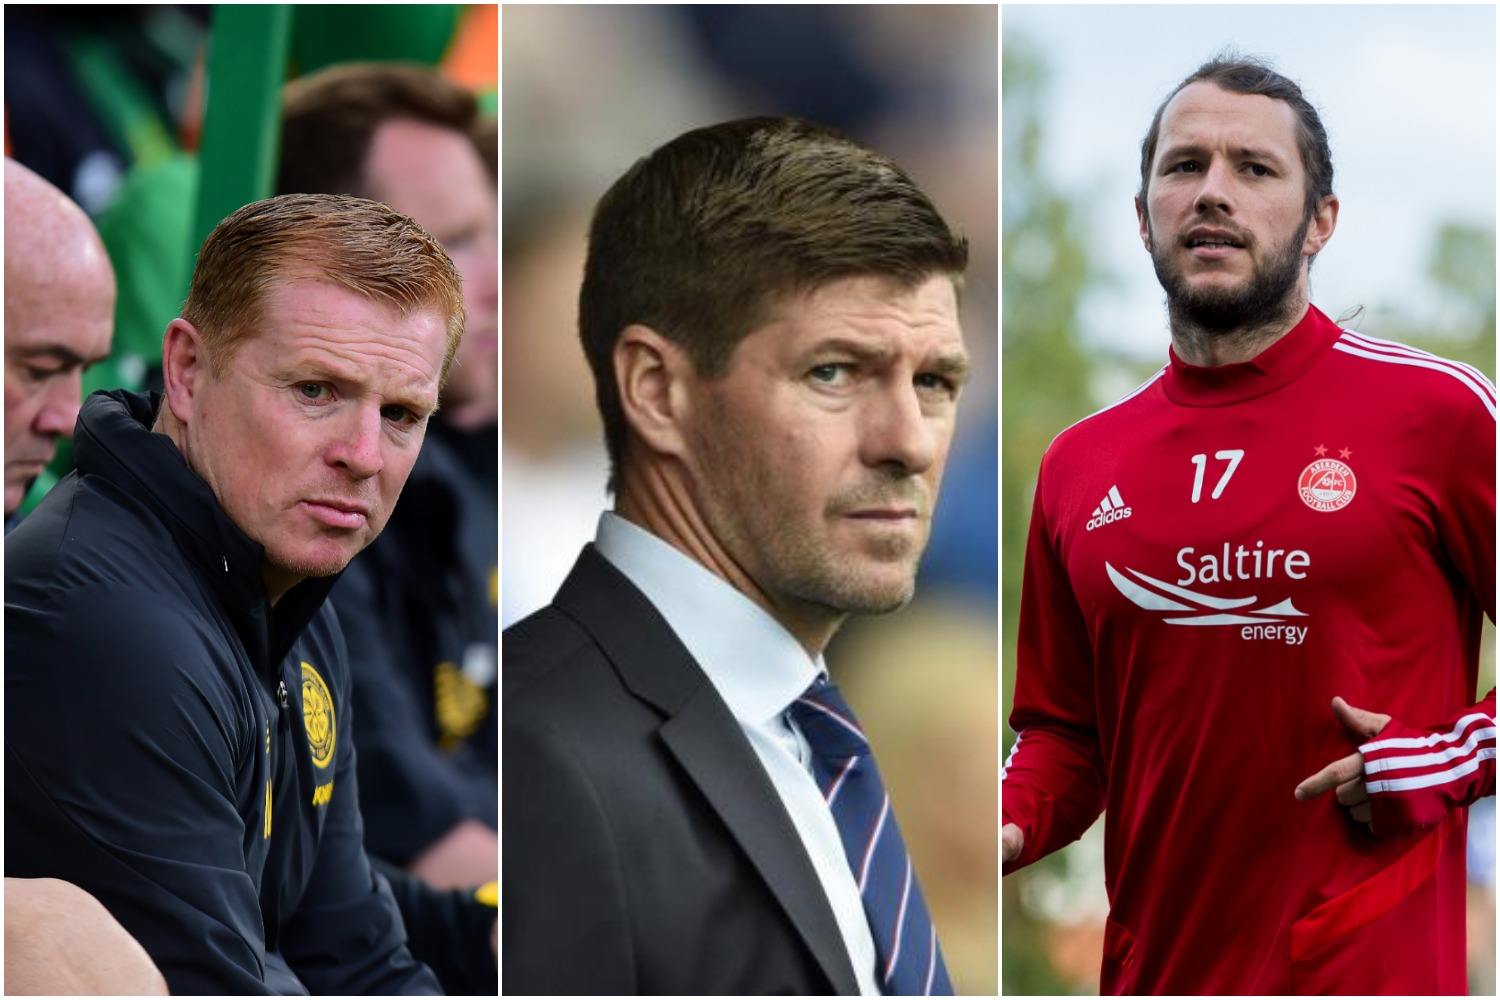 Celtic hope for 'two or three' signings | Rangers 'bid' £9m for striker | Stevie May move to St Johnstone back on